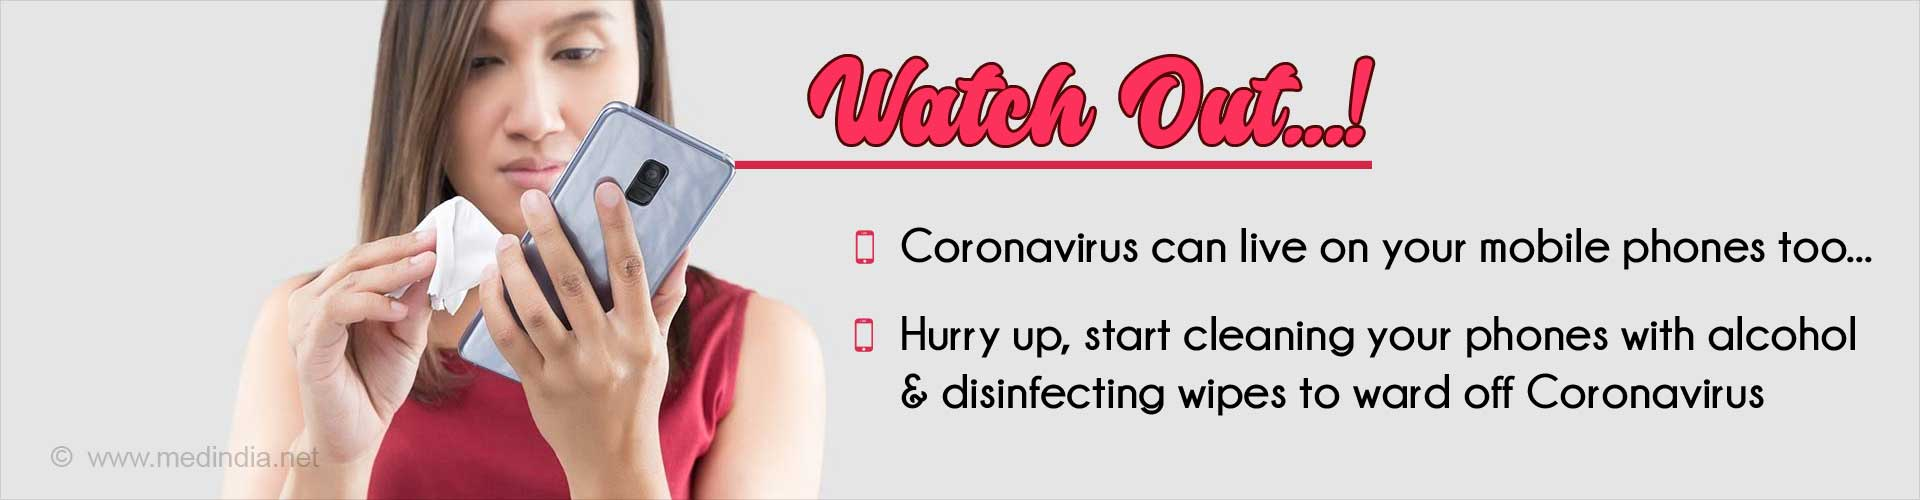 Wash Your Hands, Clean Your Phone to Stay Away from Coronavirus